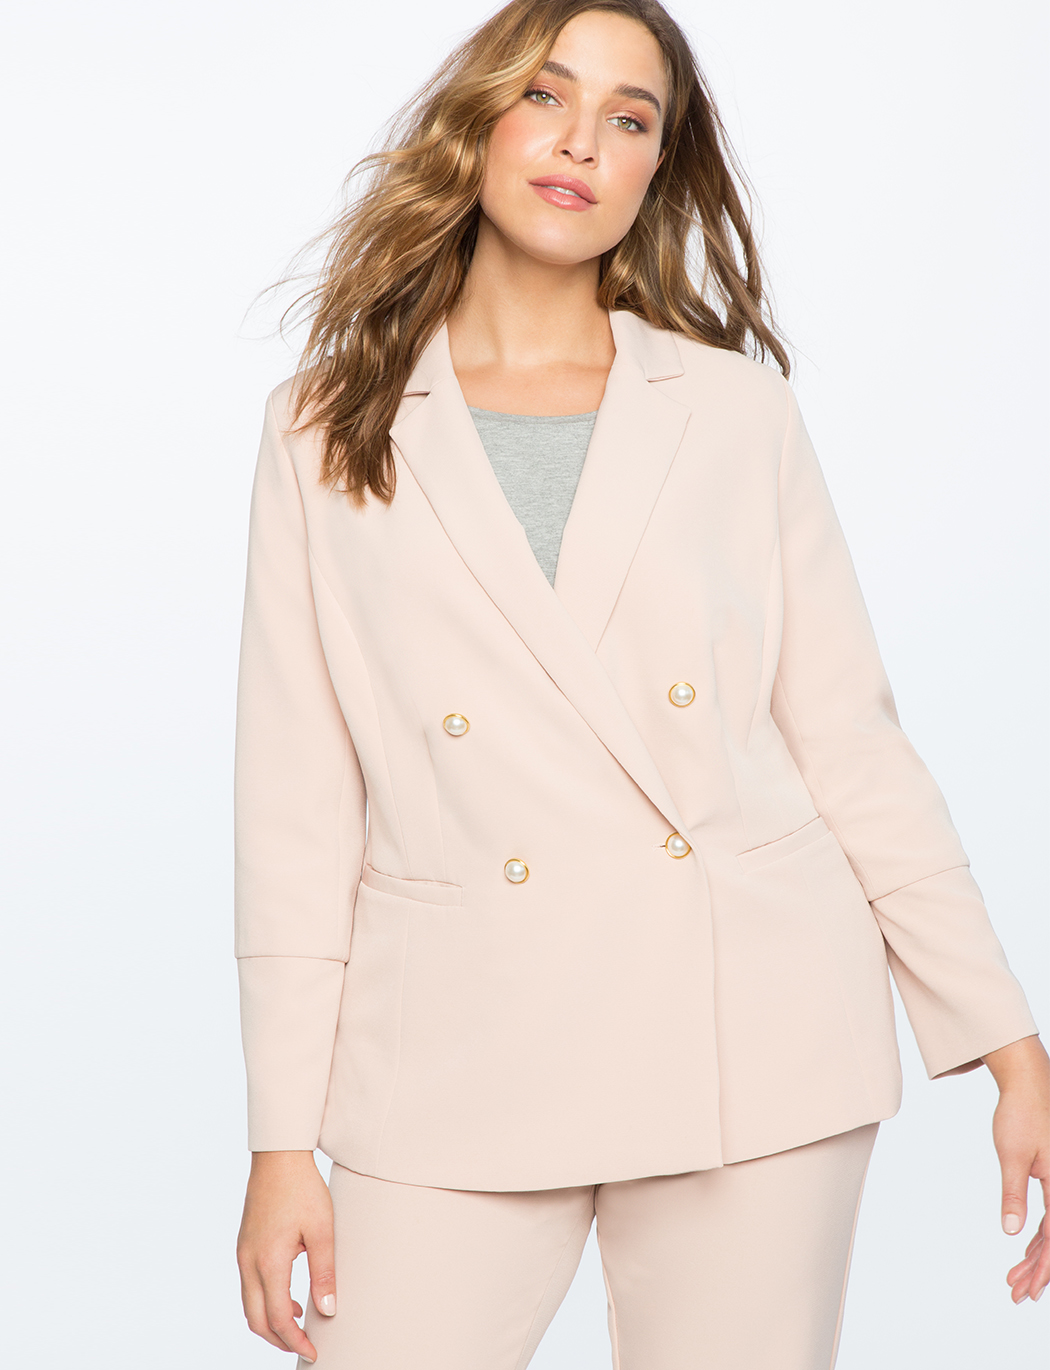 Pearl Button Double Breasted Blazer